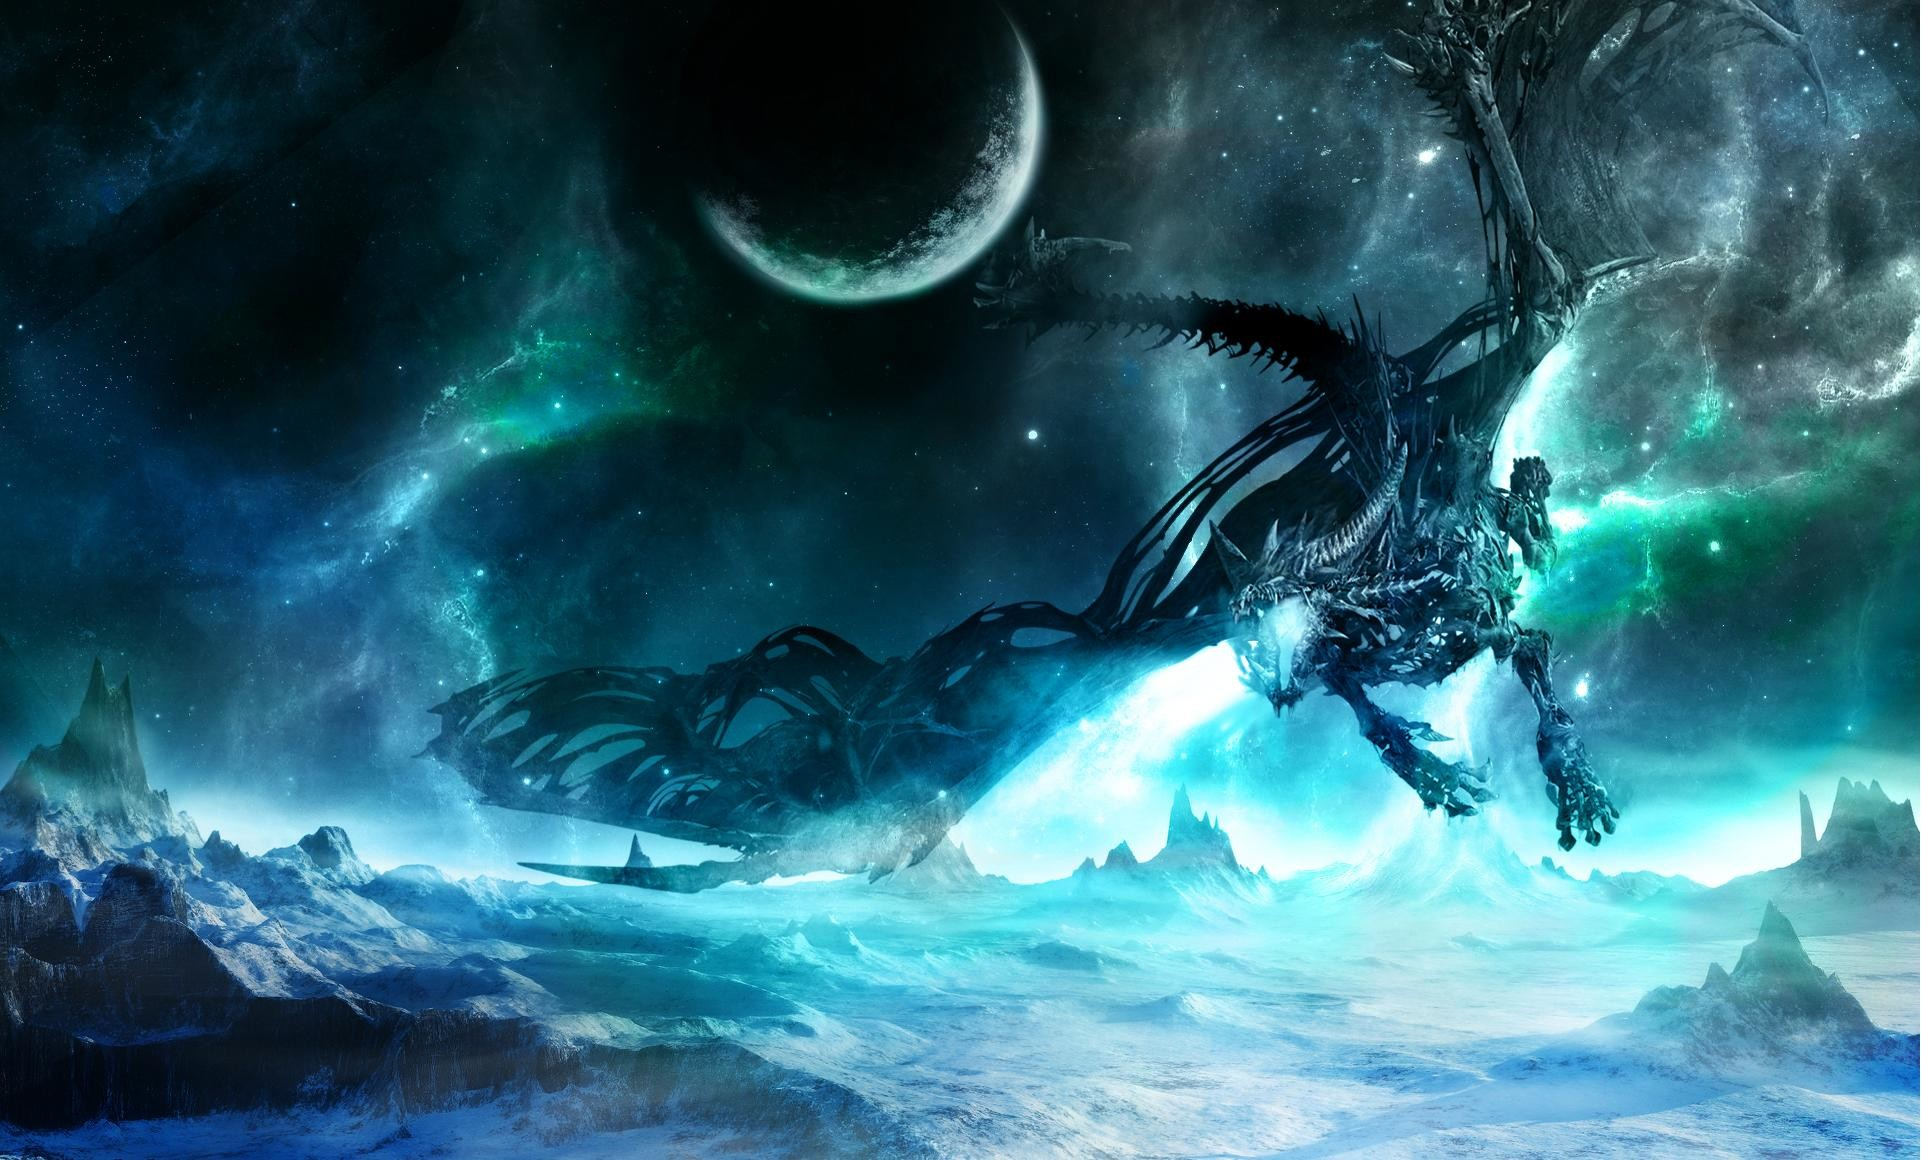 Fall Of The Lich King Wallpaper The Lich King Wallpaper 80 Images